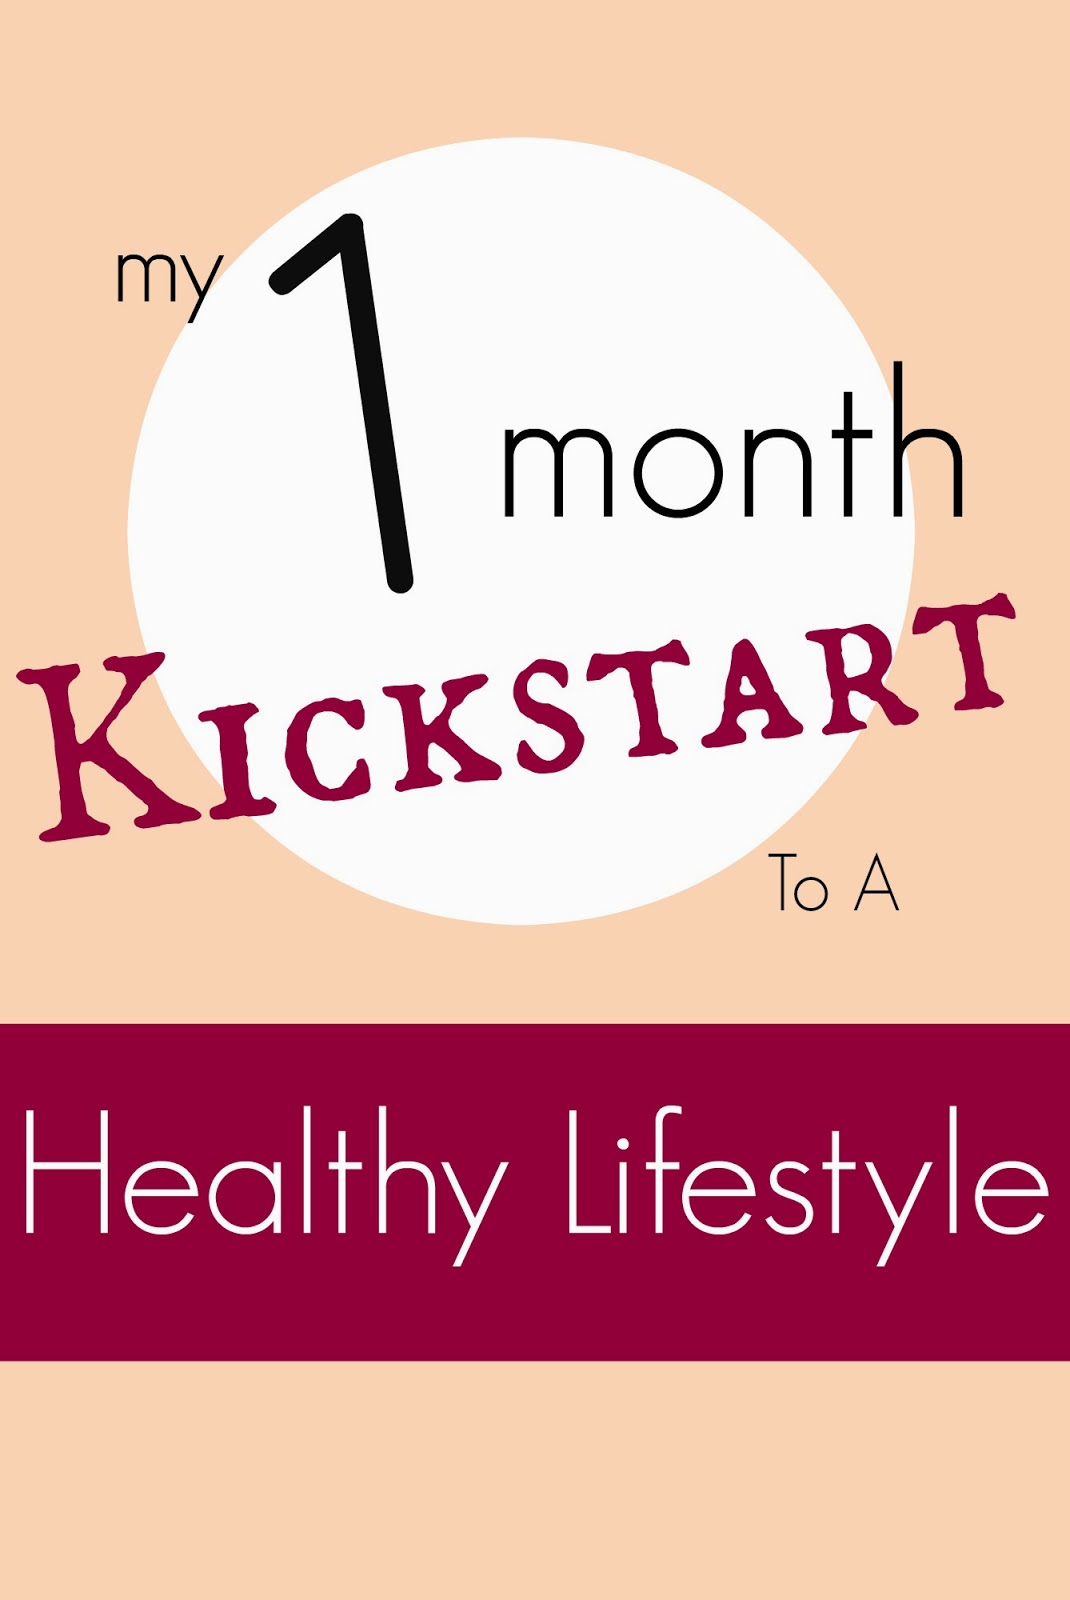 My 1 month kickstart to a healthy lifestyle